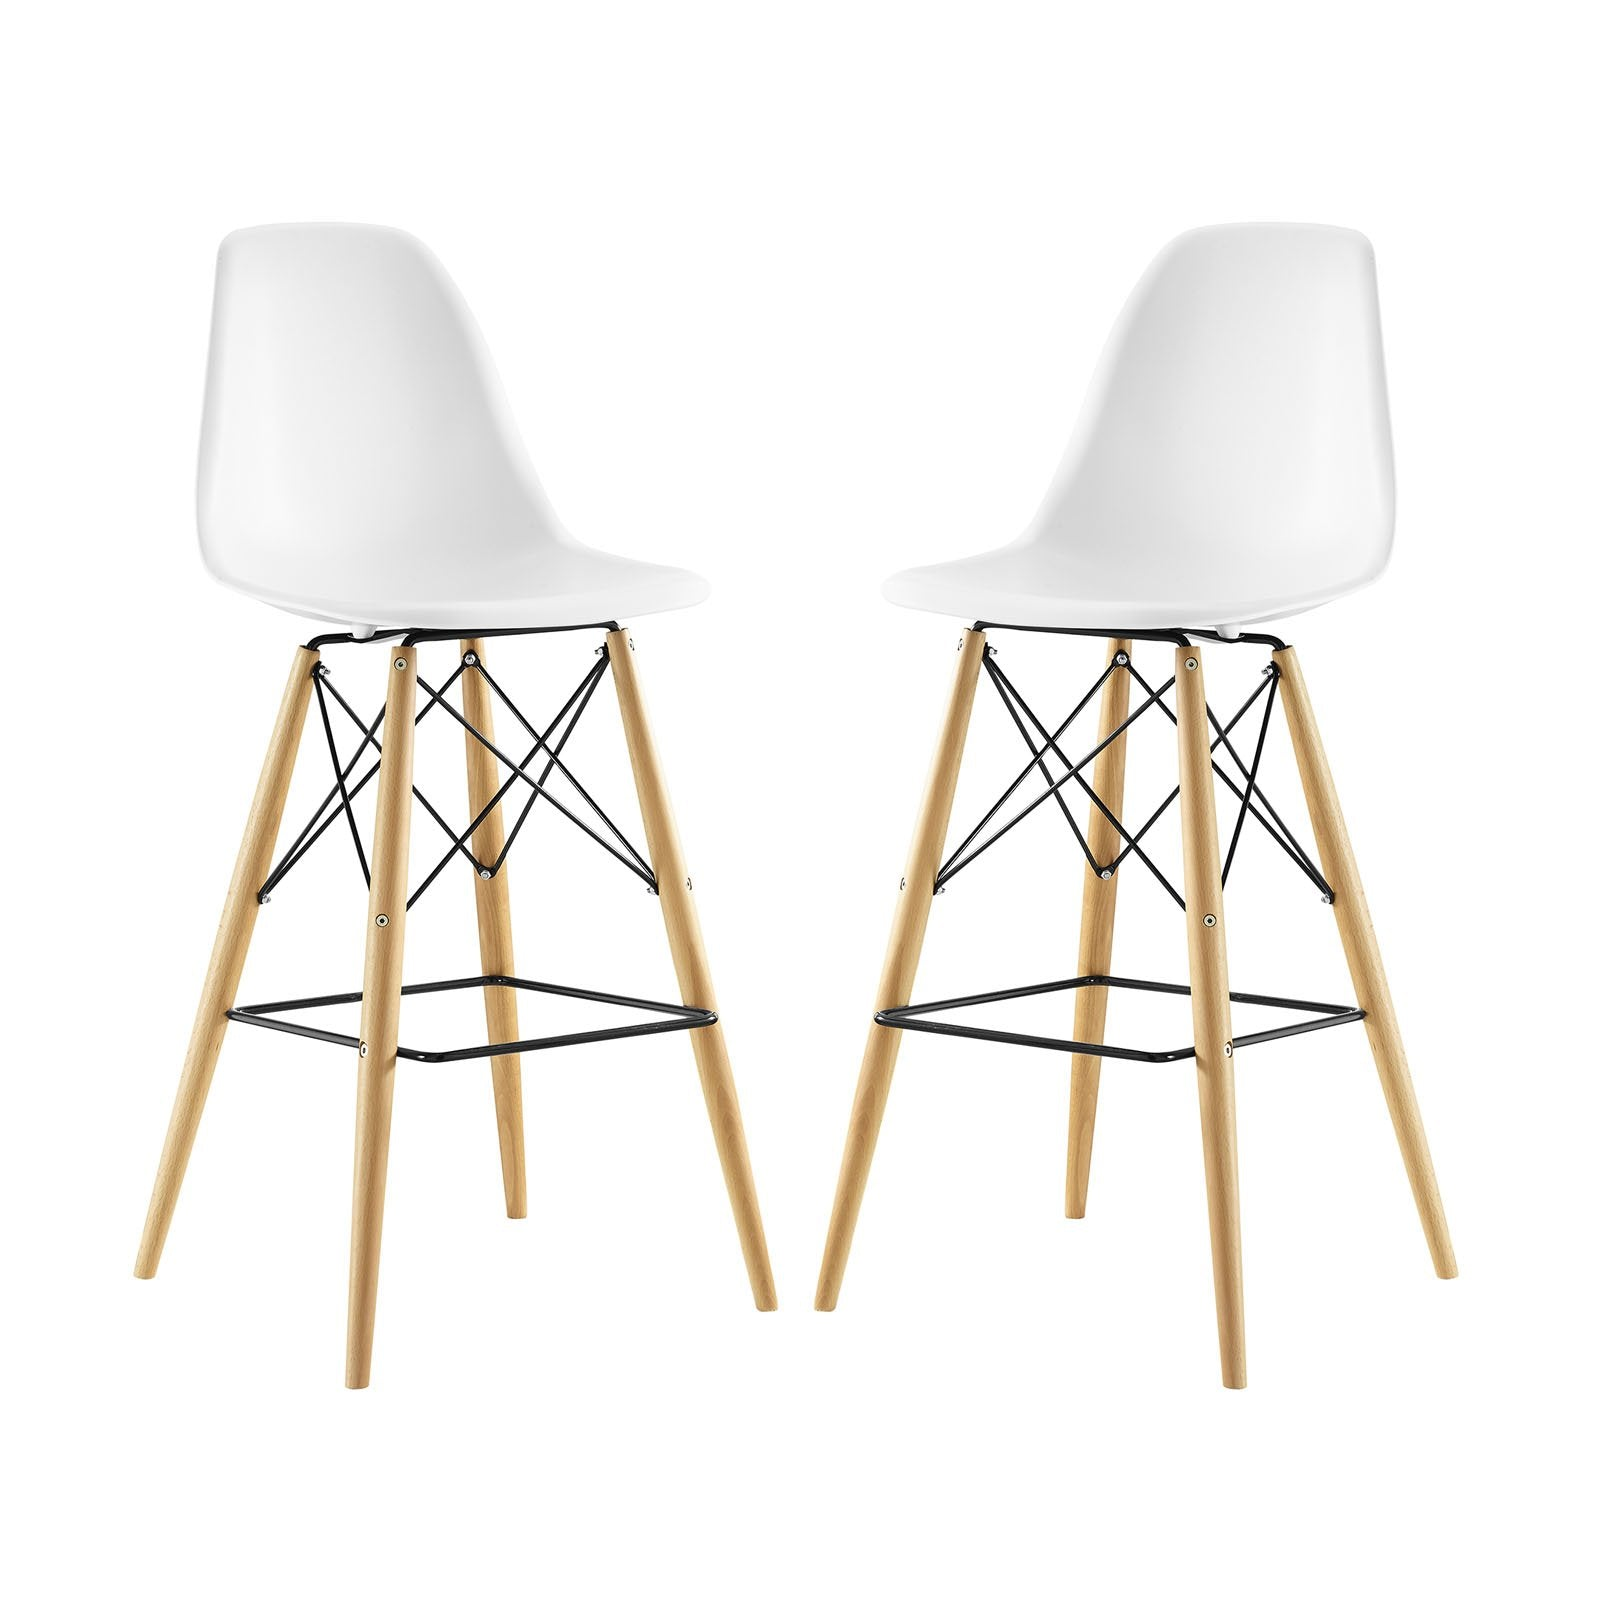 East End Imports Pyramid Dining Side Bar Stool Set of 2 in White